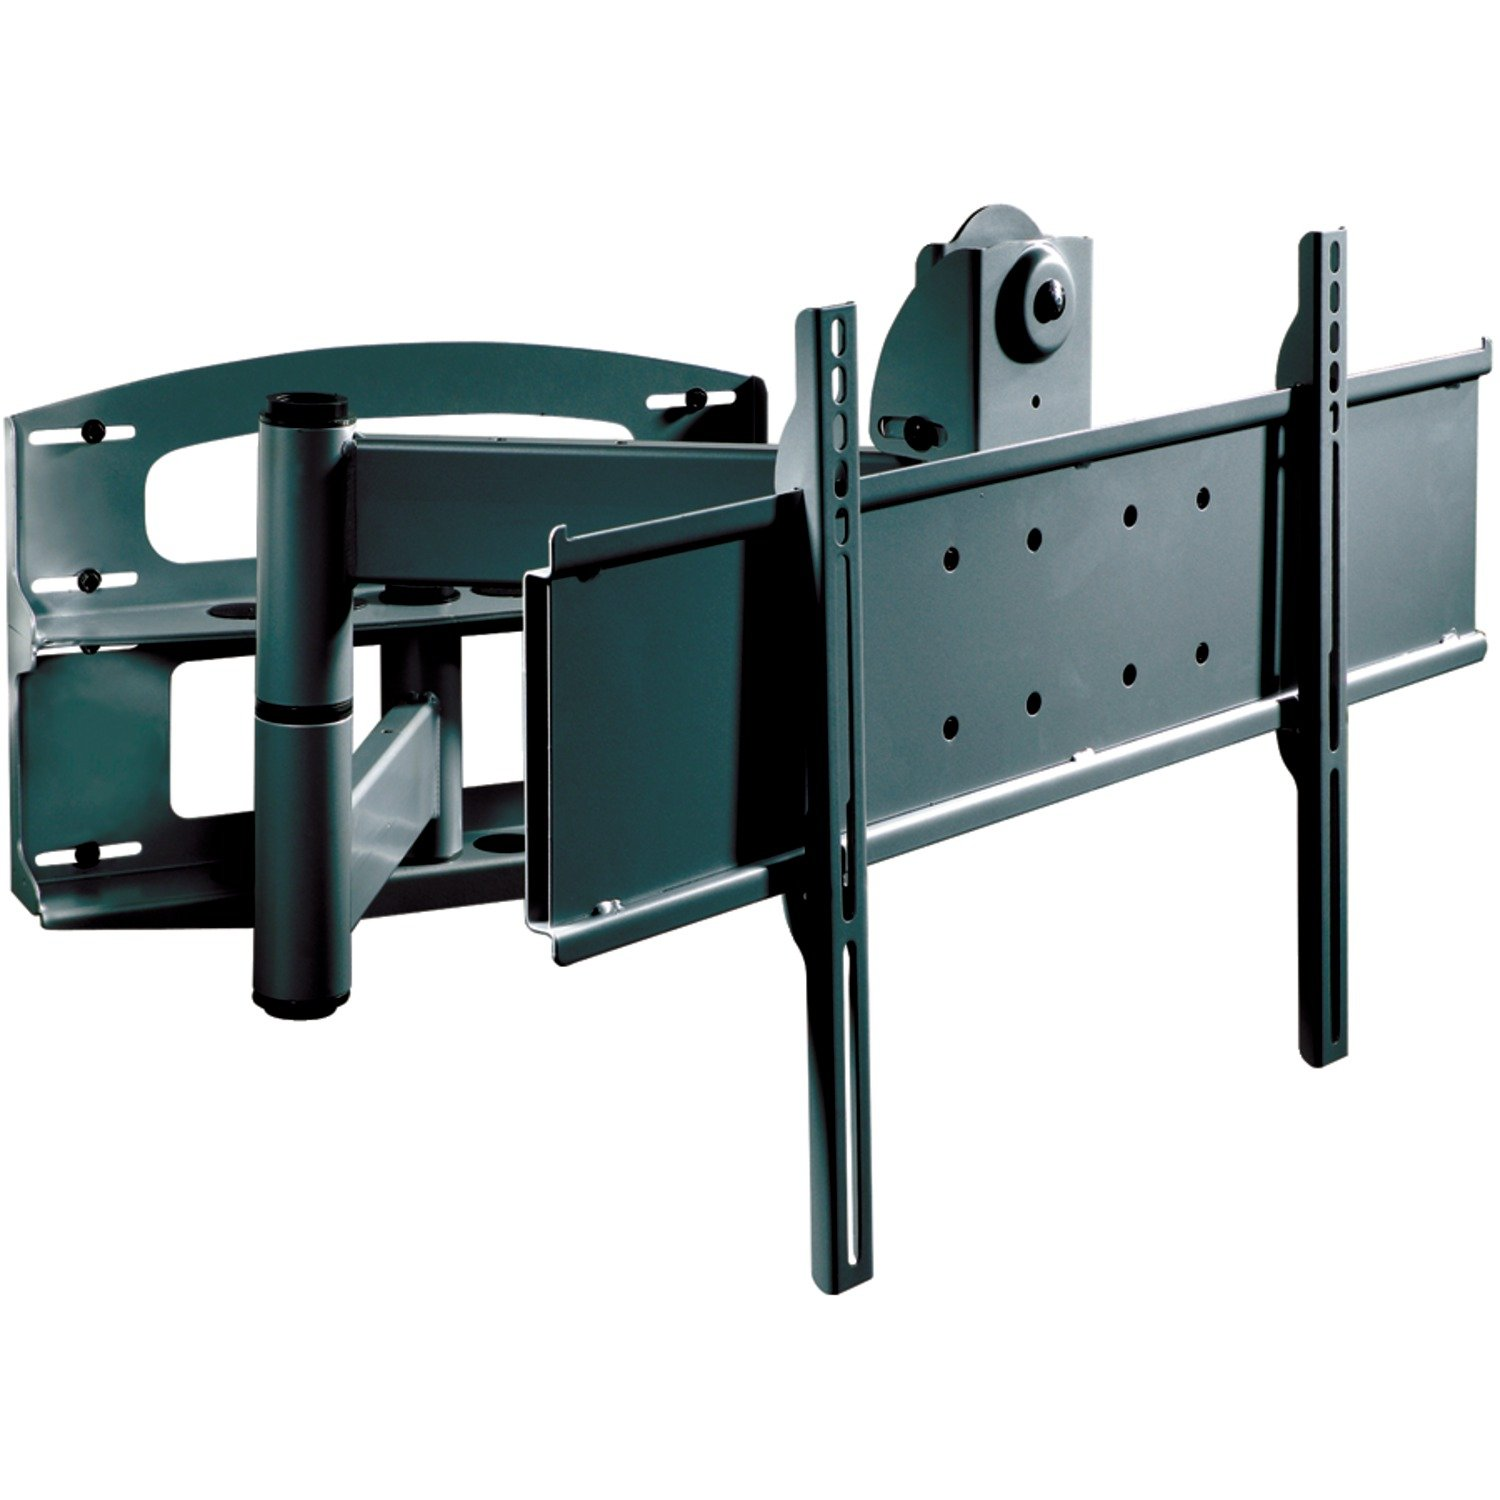 Amazon.com: Peerless 37 - 60 Inches Full-Motion Plus Wall Mount, Black:  Home Audio & Theater - Amazon.com: Peerless 37 - 60 Inches Full-Motion Plus Wall Mount